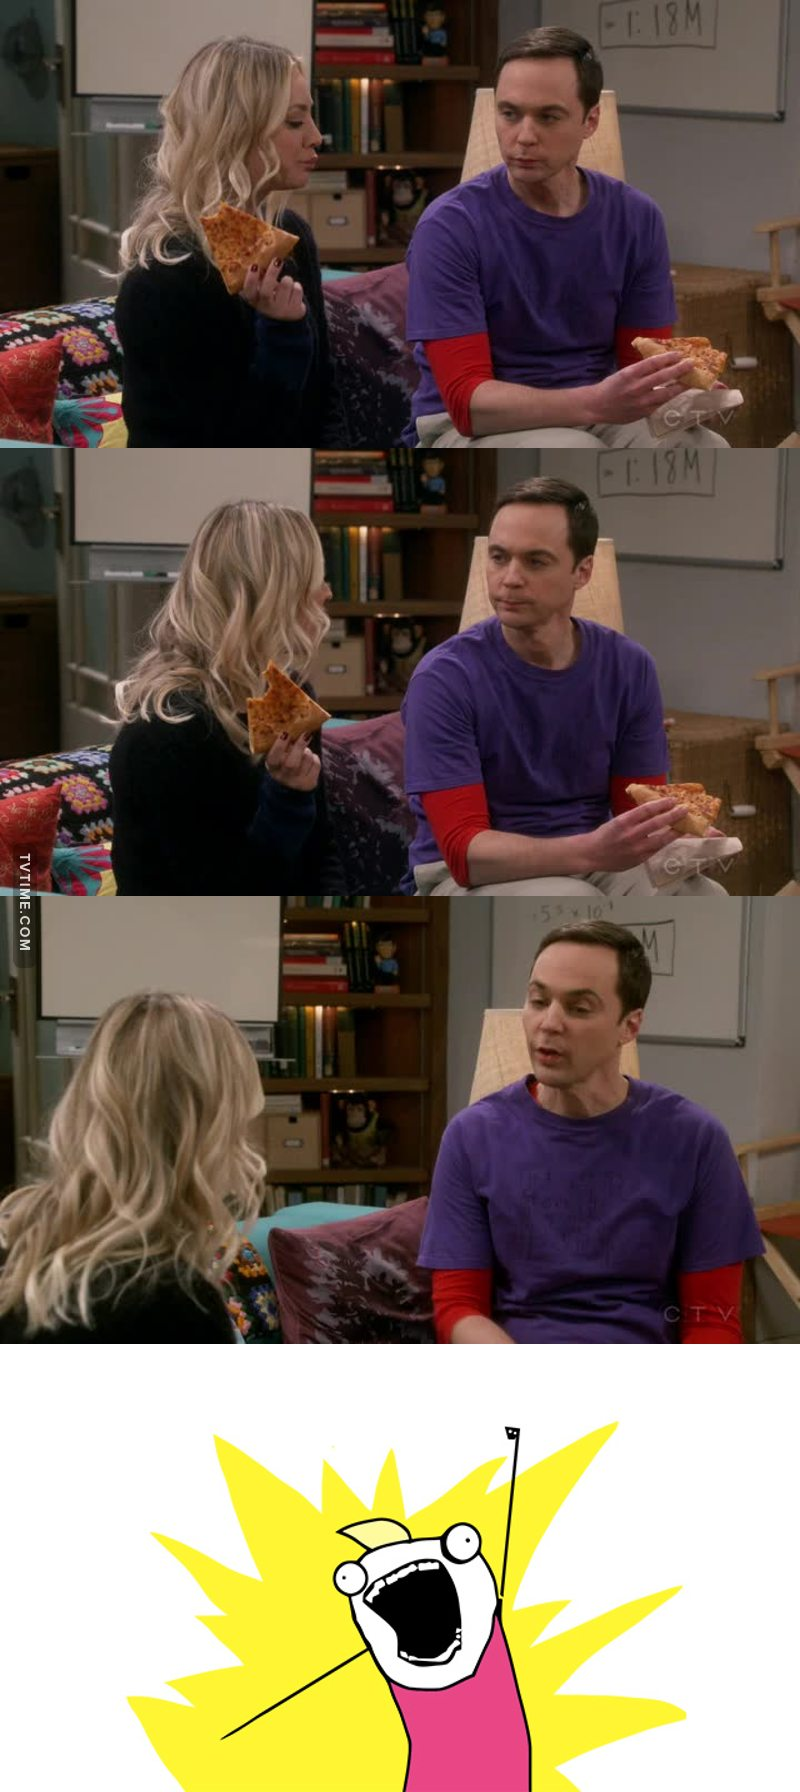 Penny and Sheldon have great chemistry together, alway make me either laugh or appreciate the effort of both of them